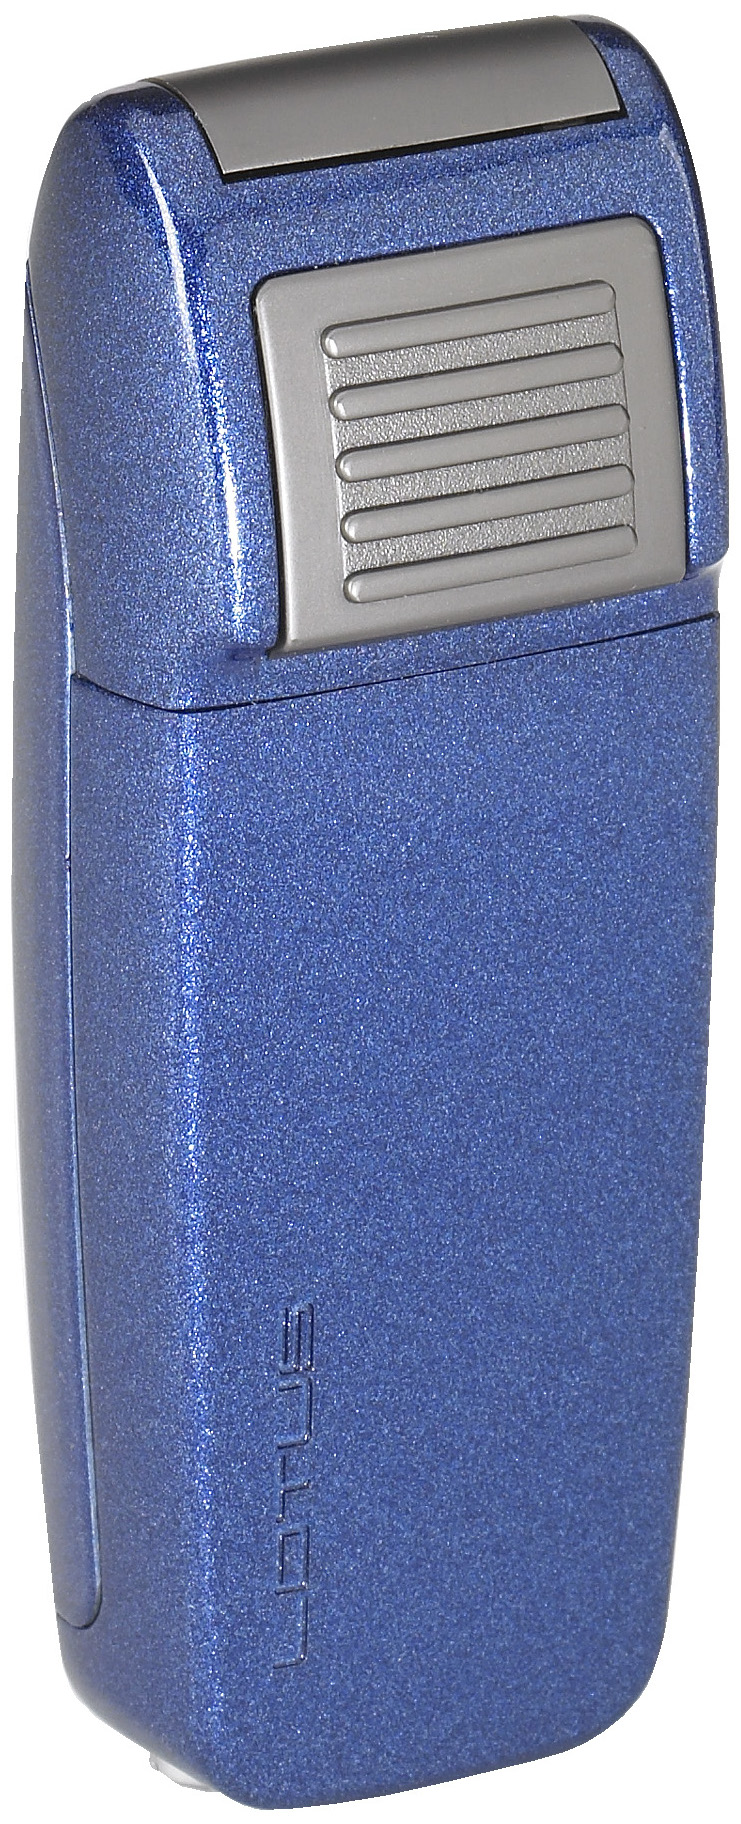 Lotus L34 Retro Double Torch Lighter with Retracable Punch Blue Metallic